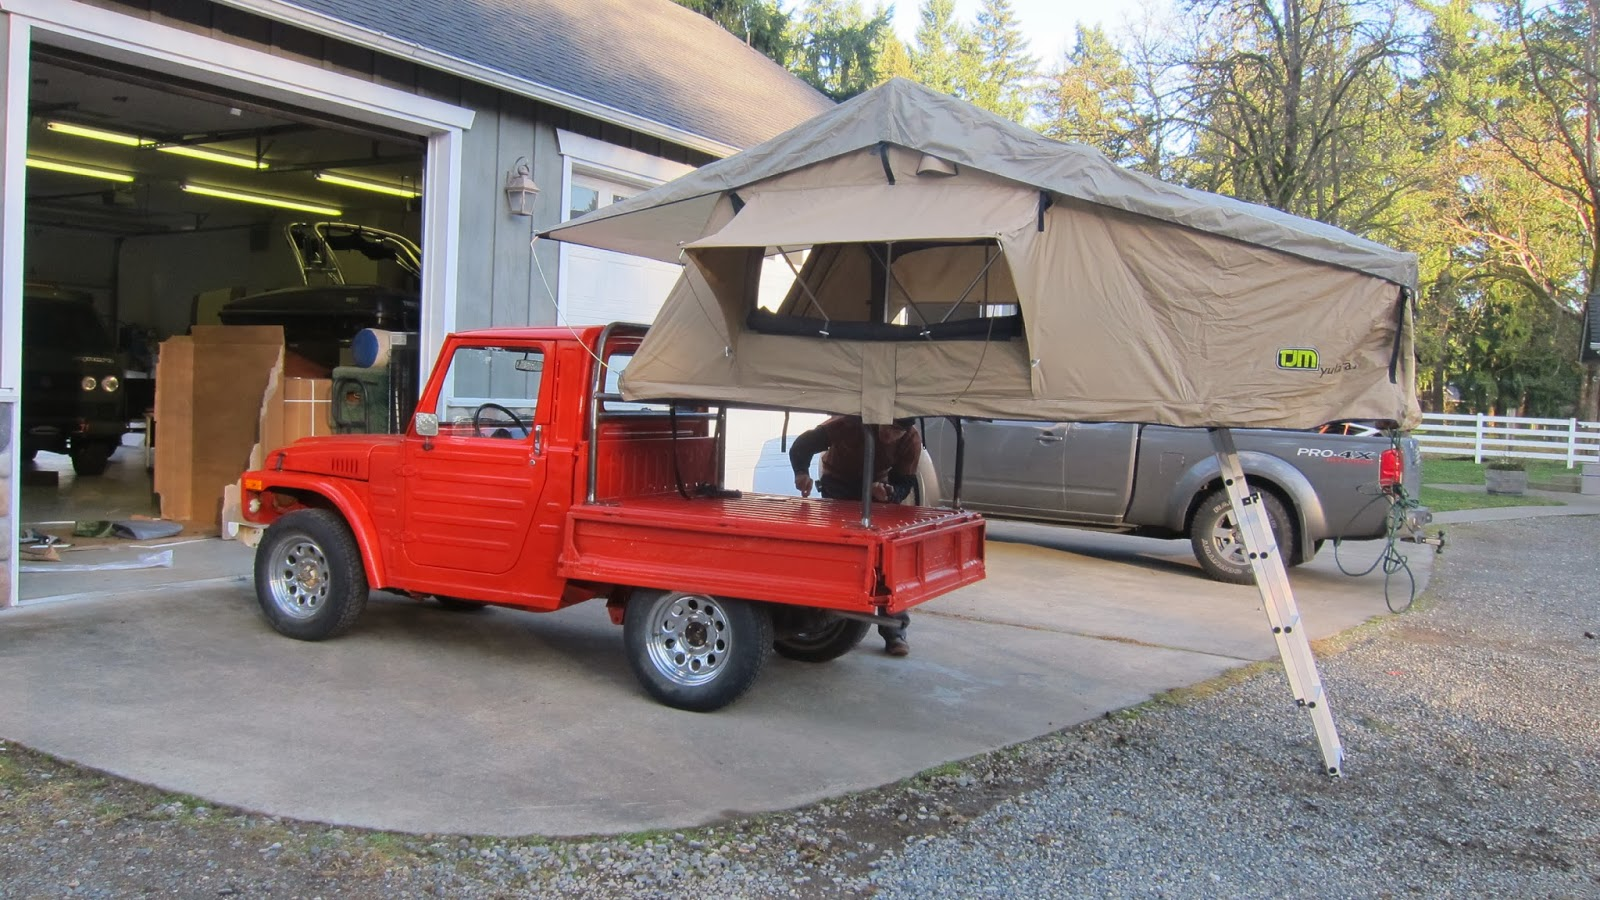 The LJ81 in camping mode